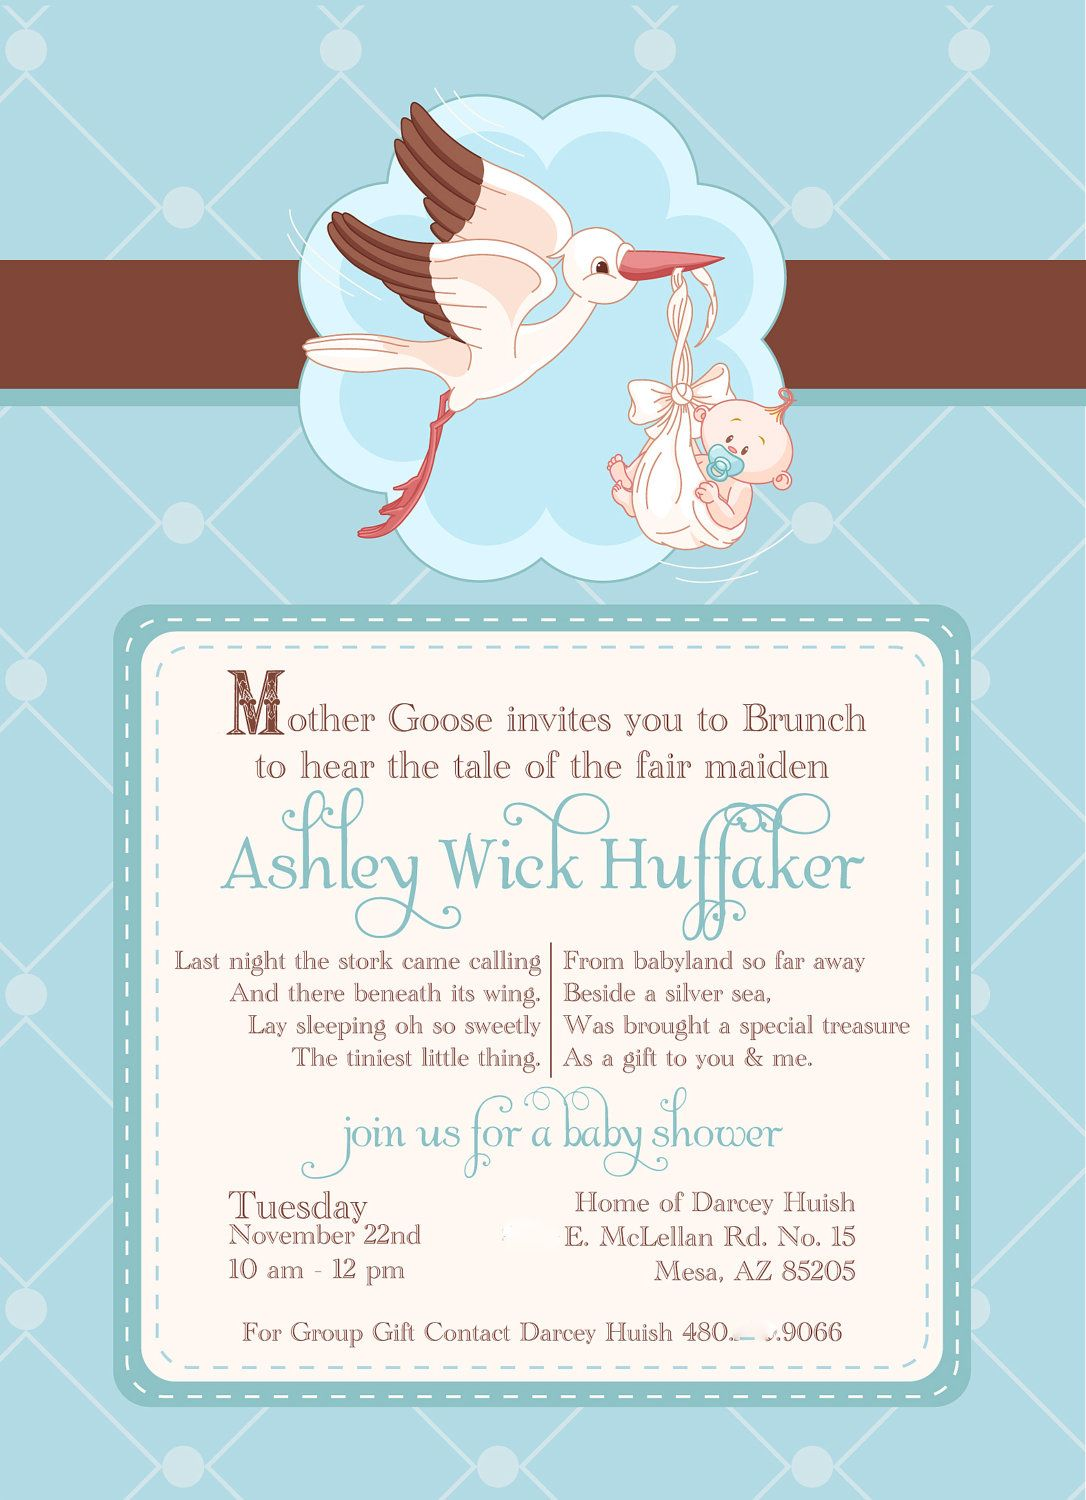 Baby shower invitation 25 printed mother goose in blue brown baby shower invitation 25 printed mother goose in blue brown 4000 via filmwisefo Images